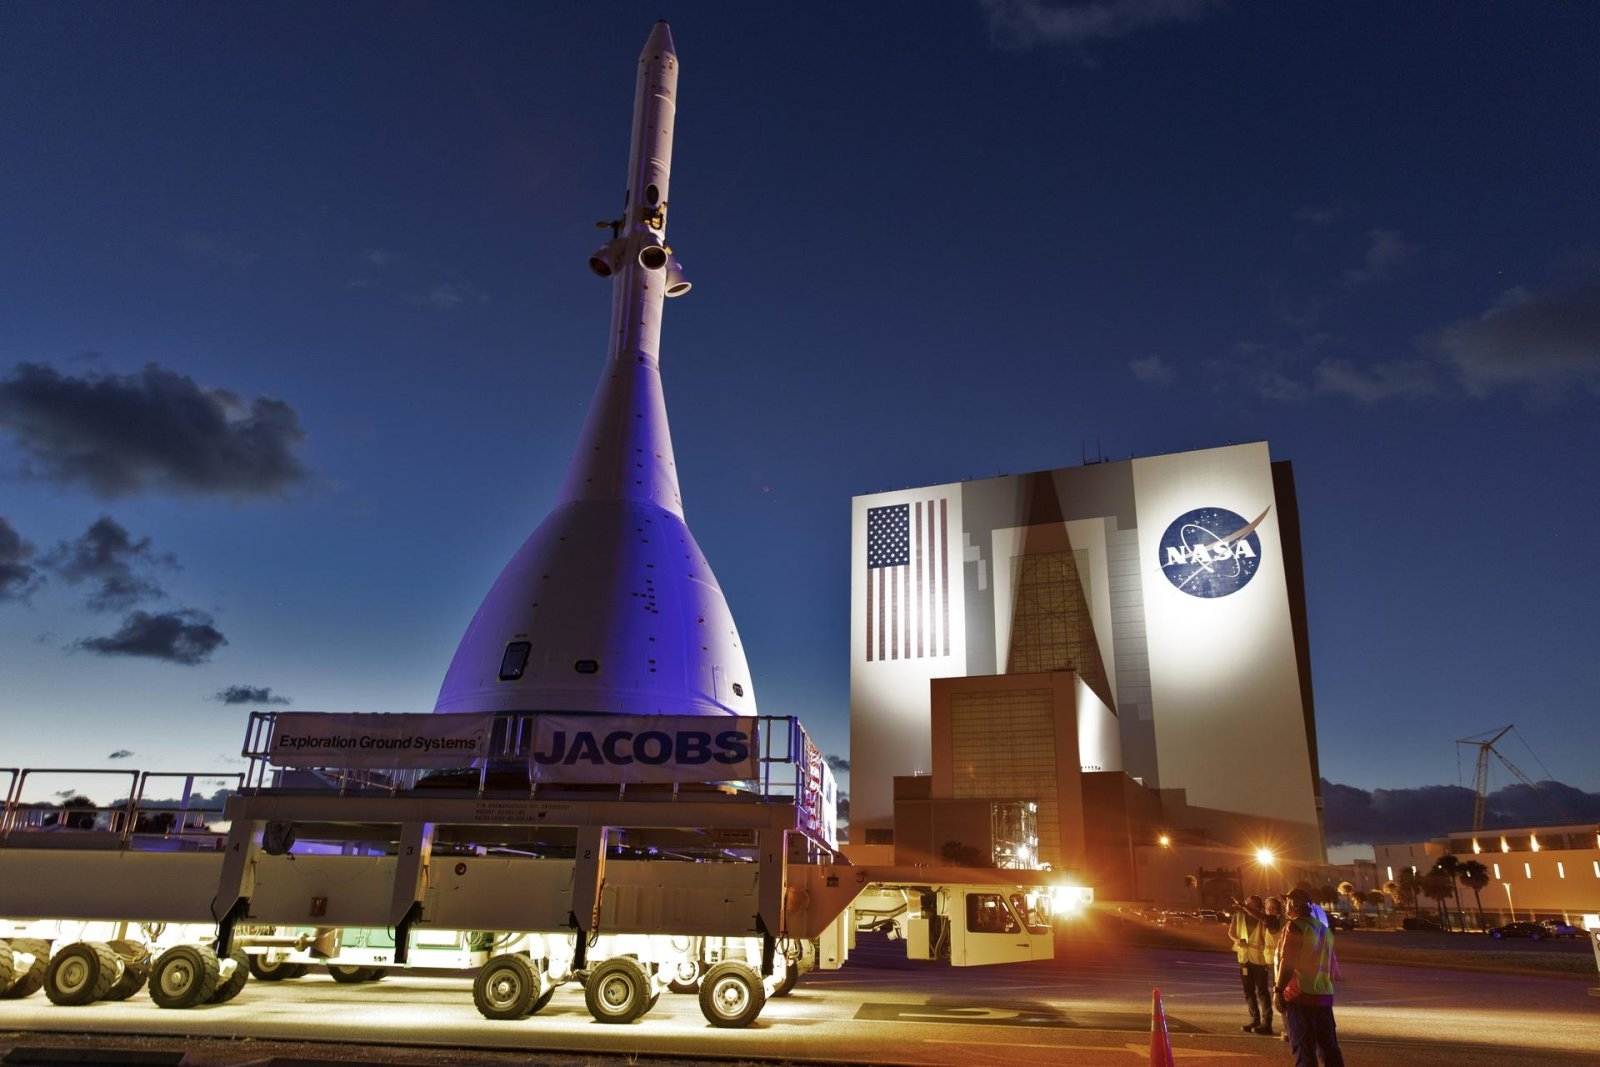 Watch NASA test the Orion module's launch abort system at 7AM | DeviceDaily.com